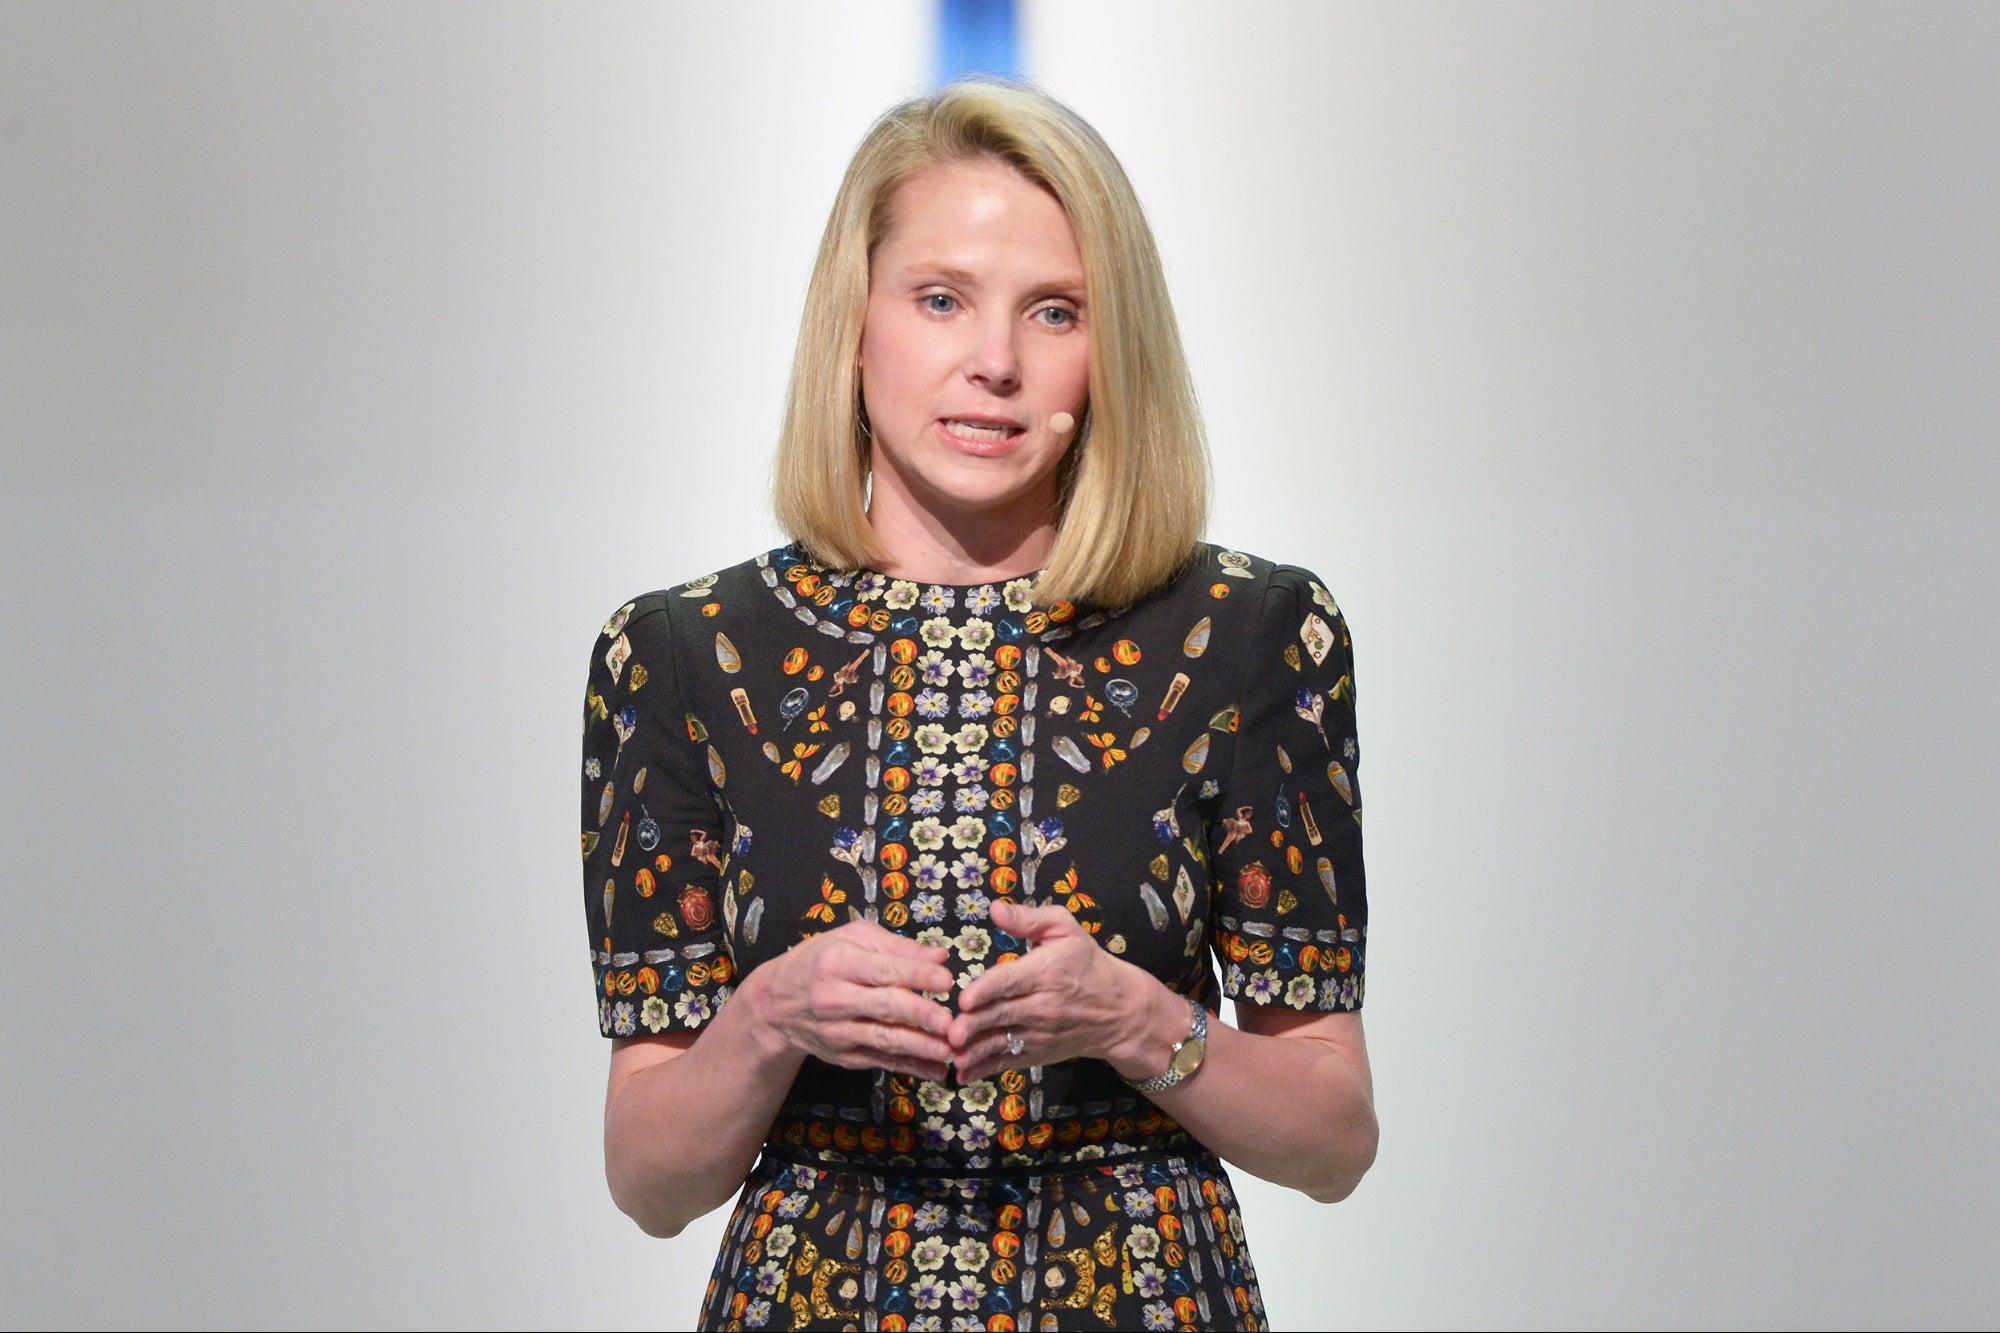 Marissa Mayer Missed a Big Meeting by Over-Napping: What Entrepreneurs Should Take From Her 'Woops' Moment